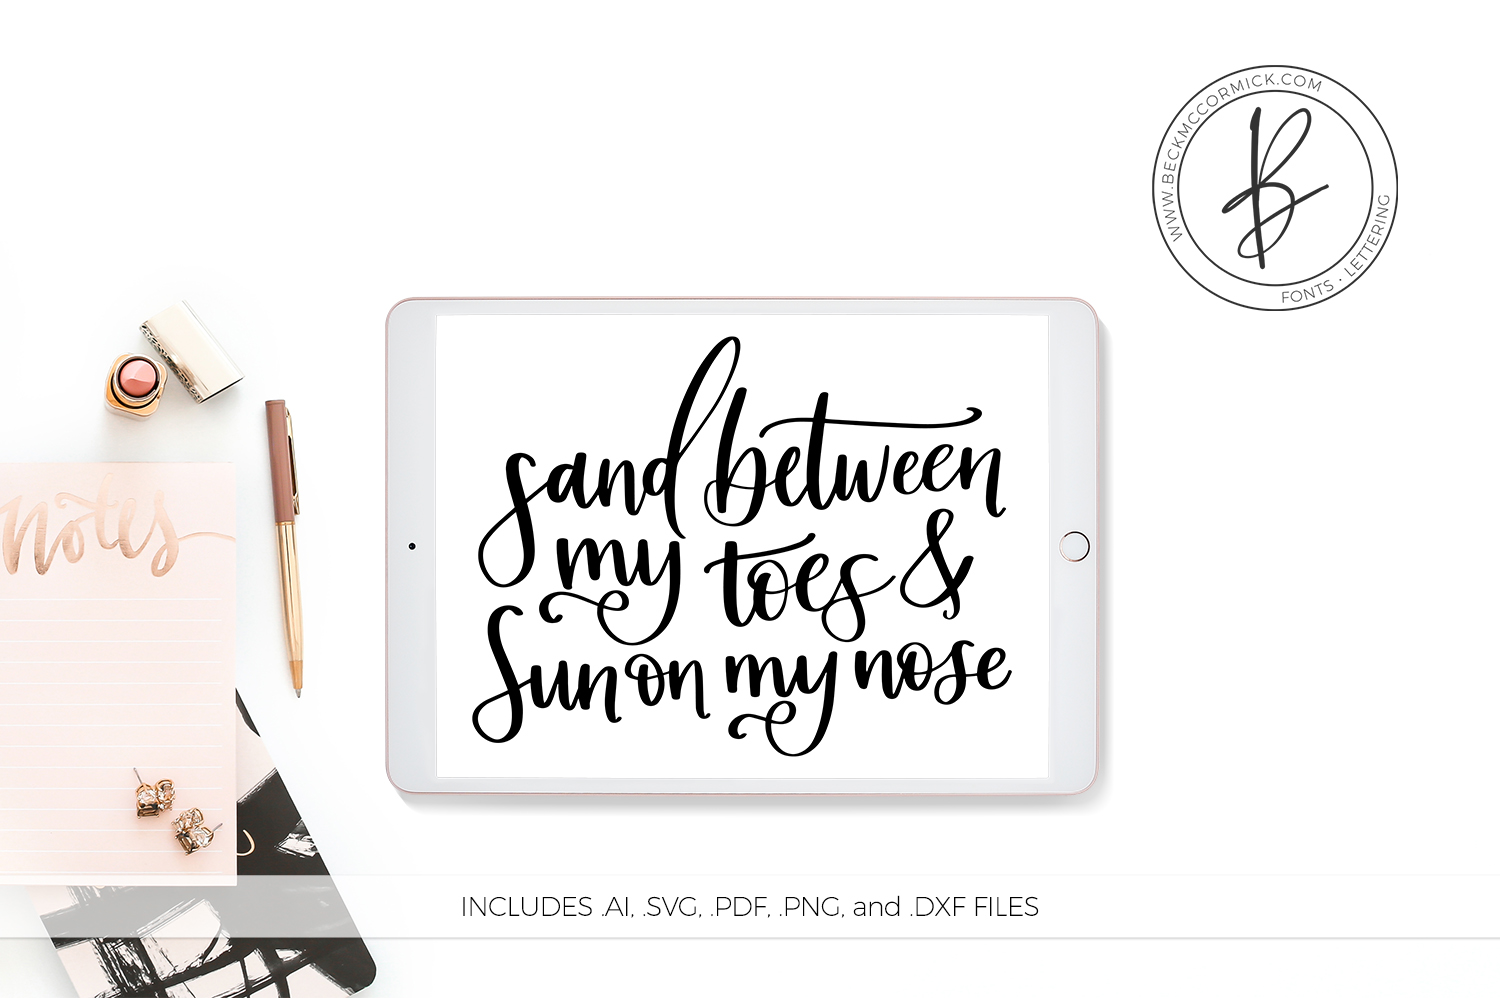 Sand Between My Toes Graphic By Beckmccormick Creative Fabrica